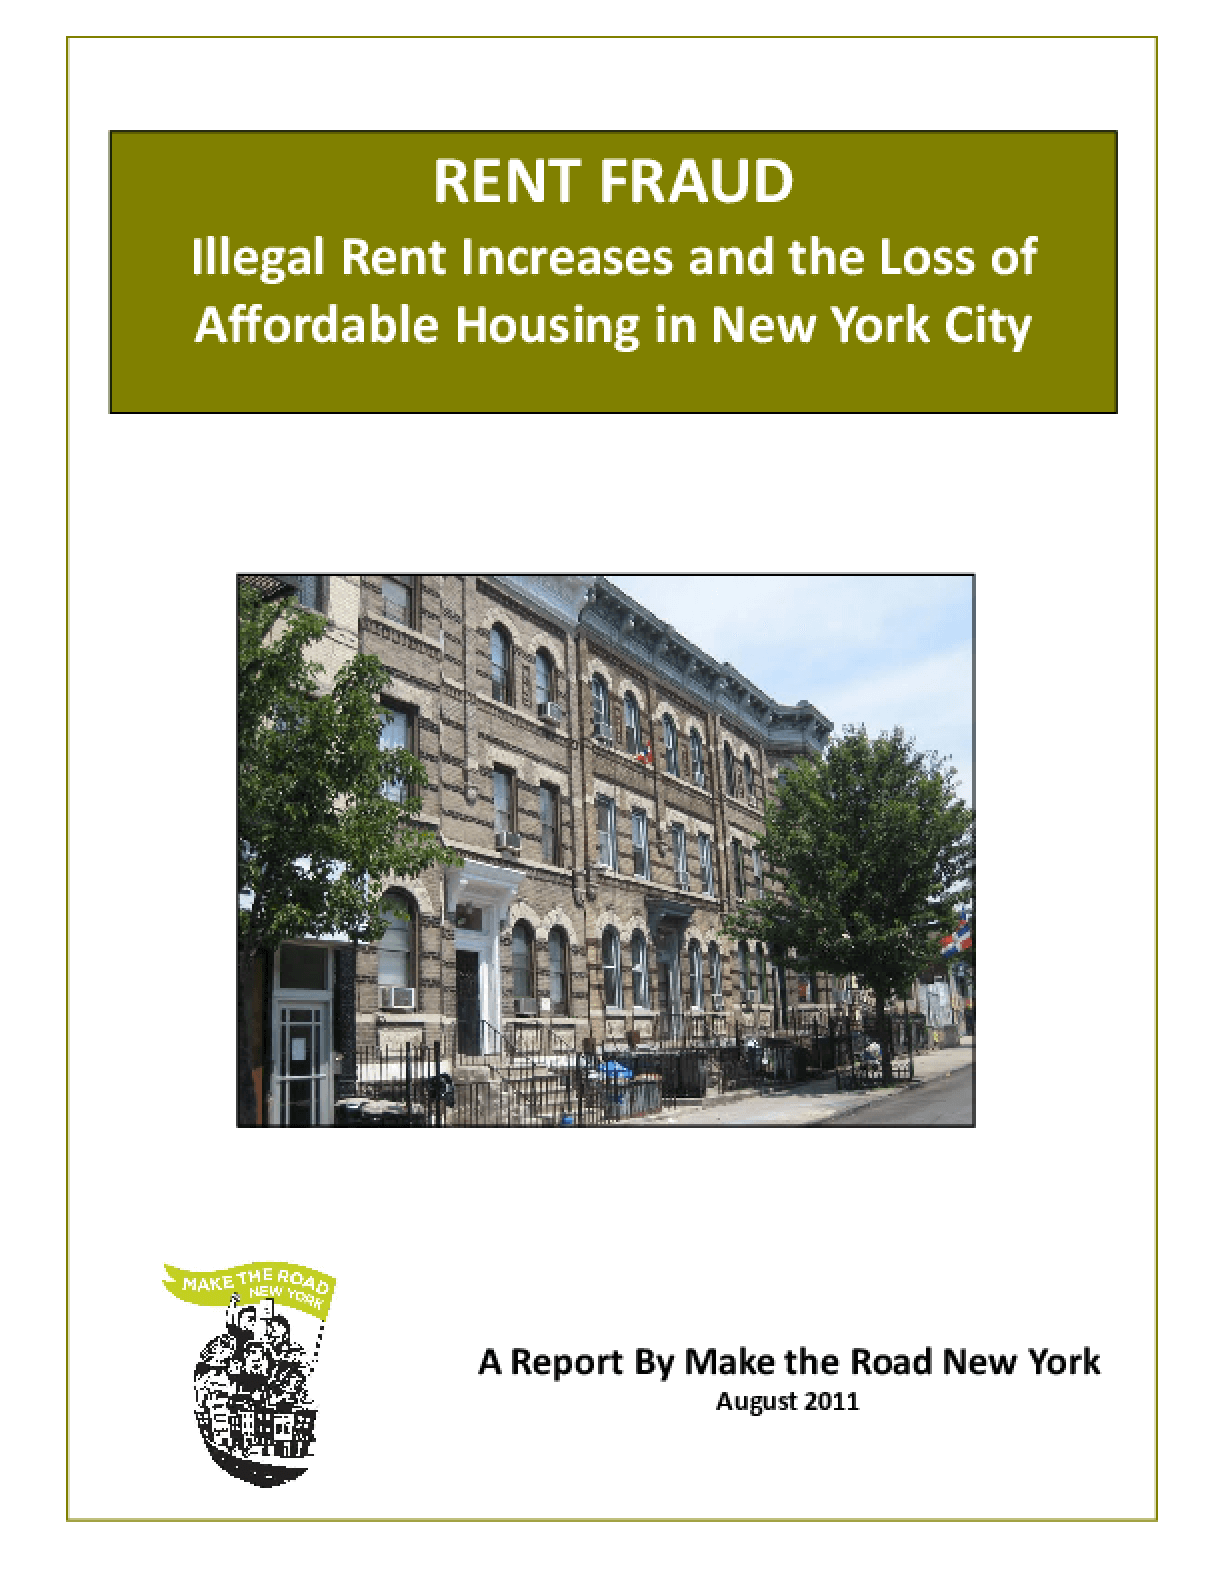 Rent Fraud: Illegal Rent Increases and the Loss of Affordable Housing in New York City